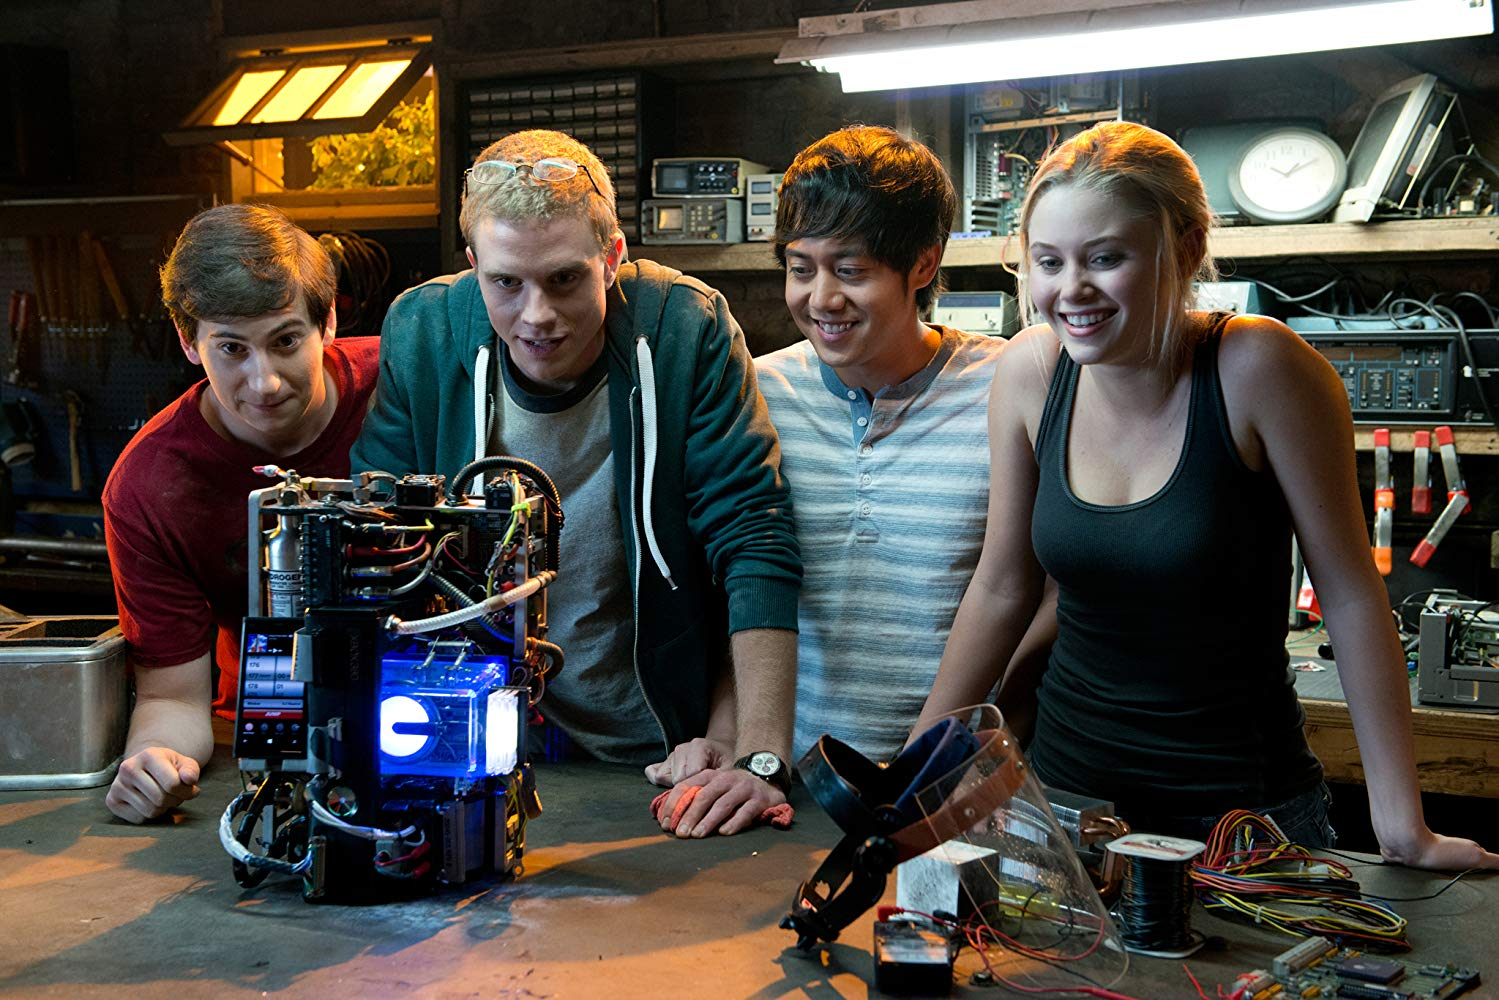 Sam Lerner, Jonny Weston, Allen Evangelista, Virginia Gardener in Project Almanac (2015)